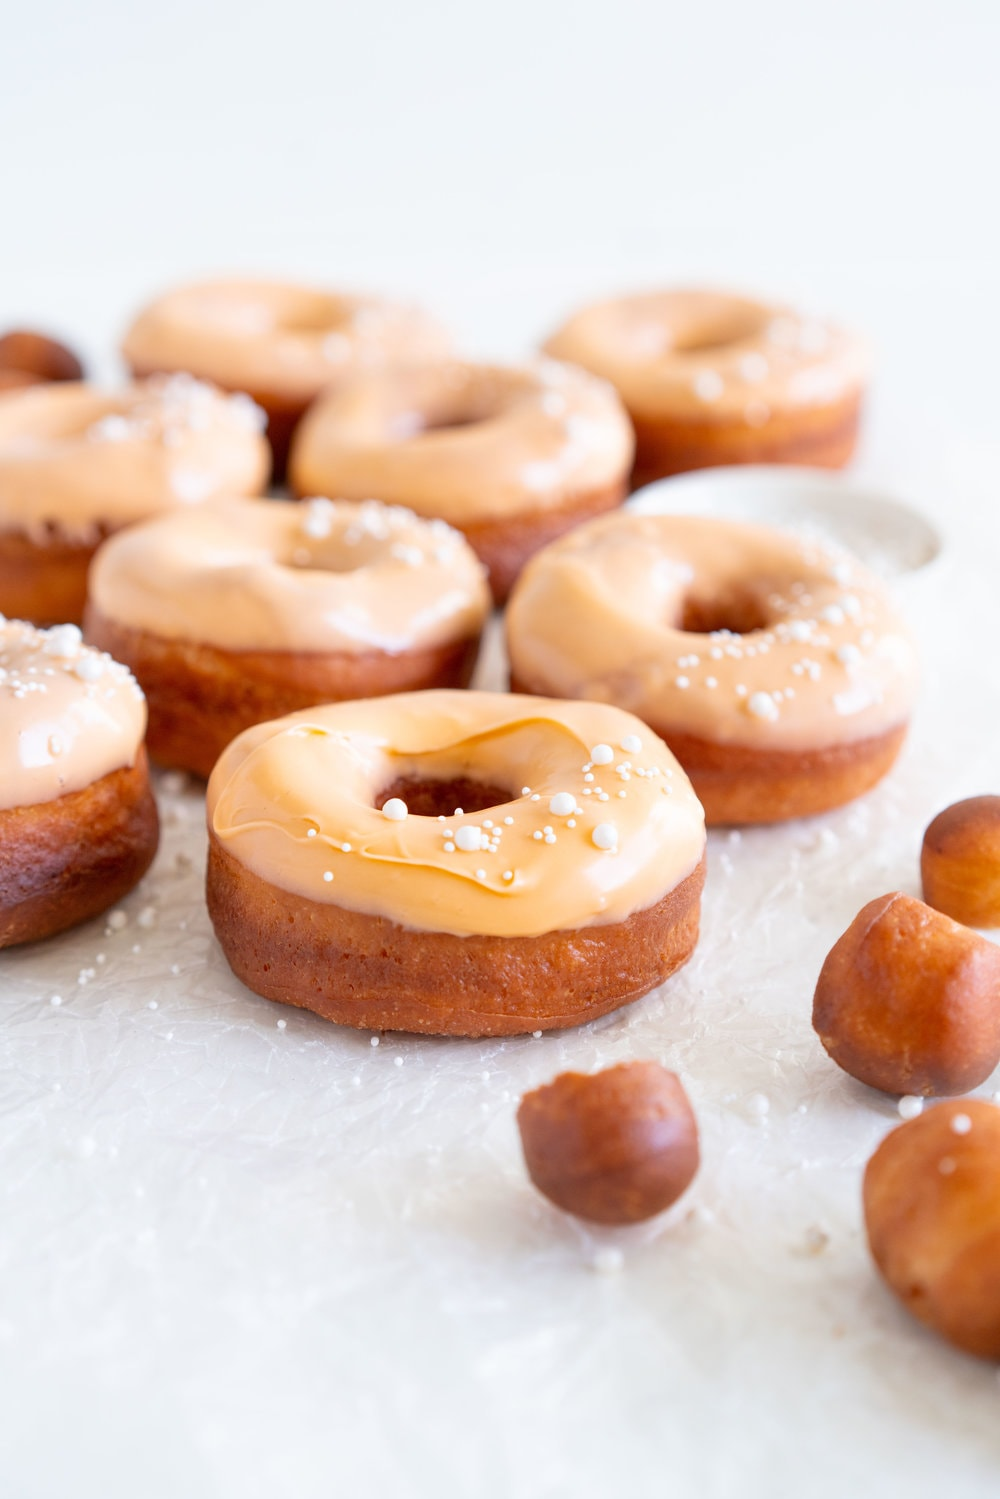 Orange Brioche Doughnuts with Orange CBD glaze. Orange infused yeast raised brioche doughnuts are topped with a sweet glaze, enhanced with CBD oil. #doughnuts #cbd